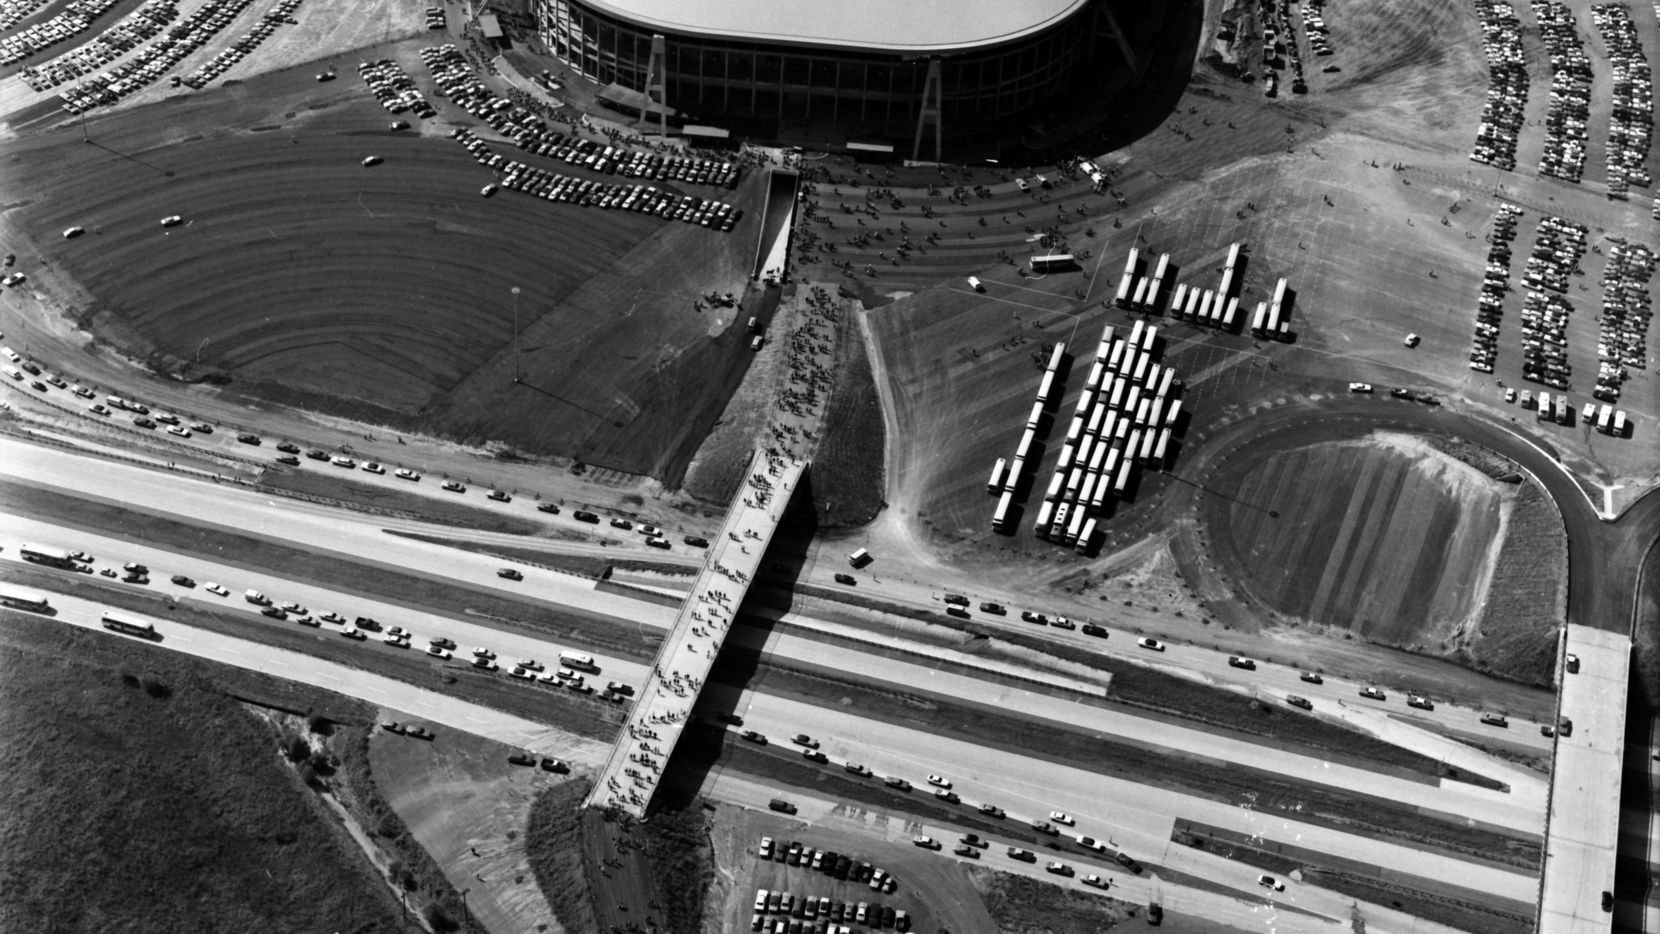 Aerial Photo of Texas Stadium during the inaugural game on Oct. 24, 1971.